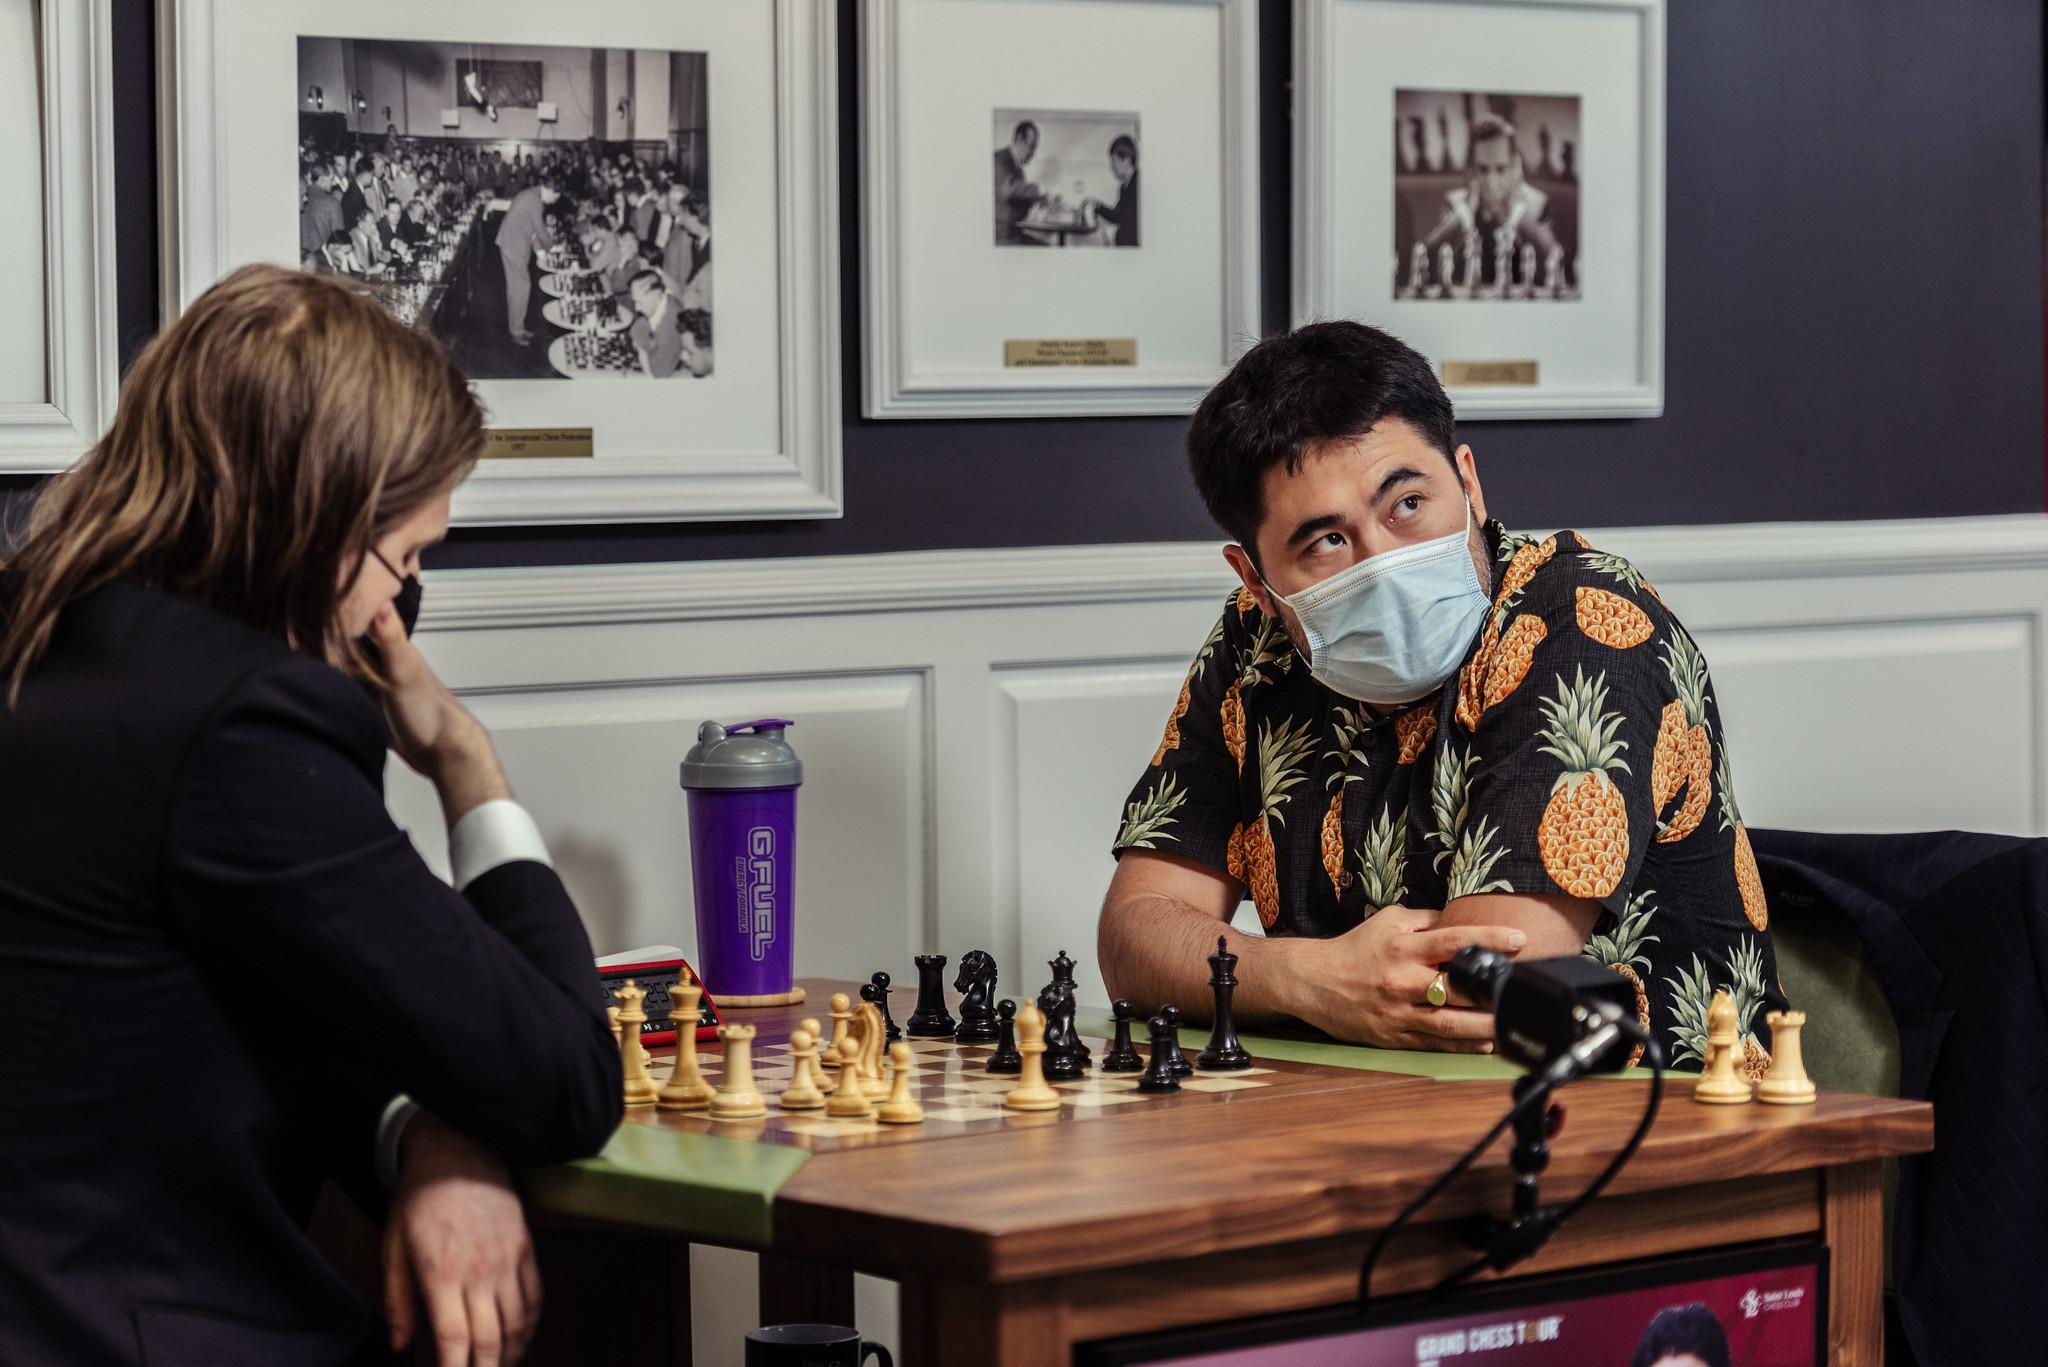 Saint Louis Rapid & Blitz Day 3: Nakamura Moves Into First, Rapport Rises